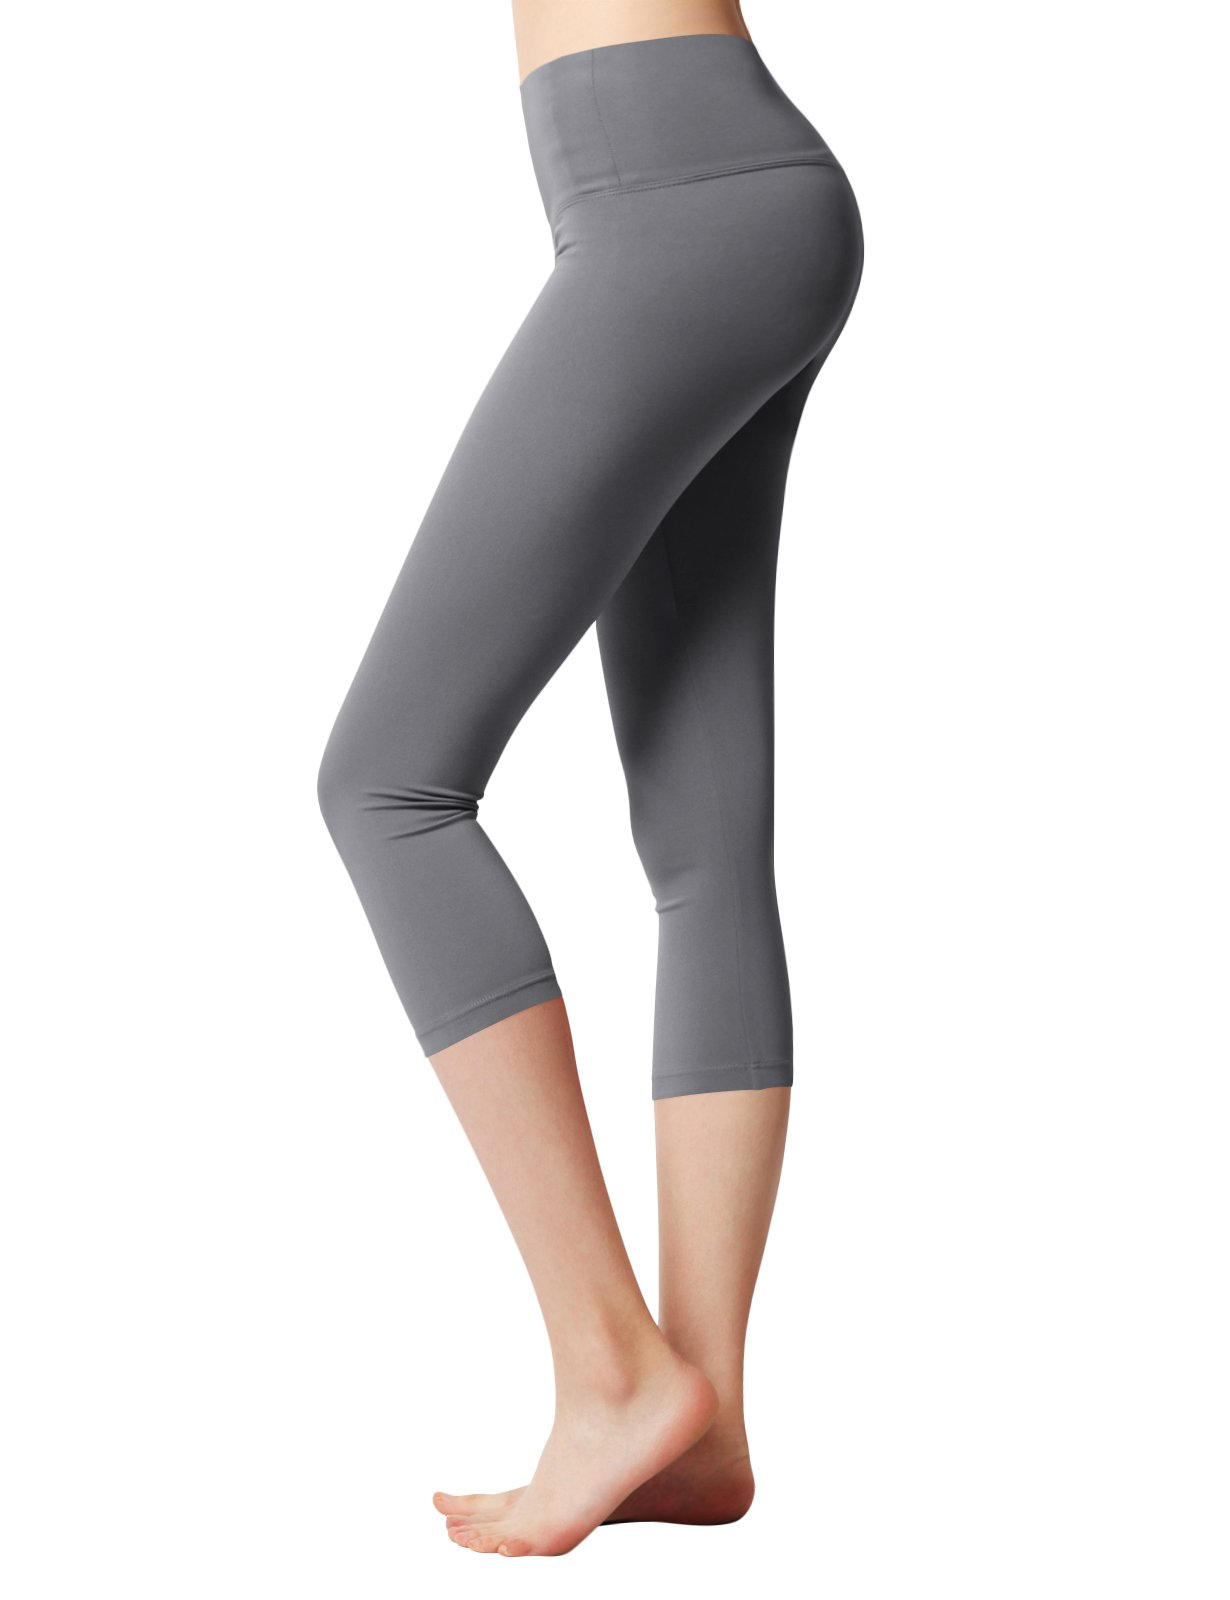 ACTICLO Women's Capris - Body Slimming Compression for Yoga, Fitness & Gym with Hidden Pocket Gray XX-Large